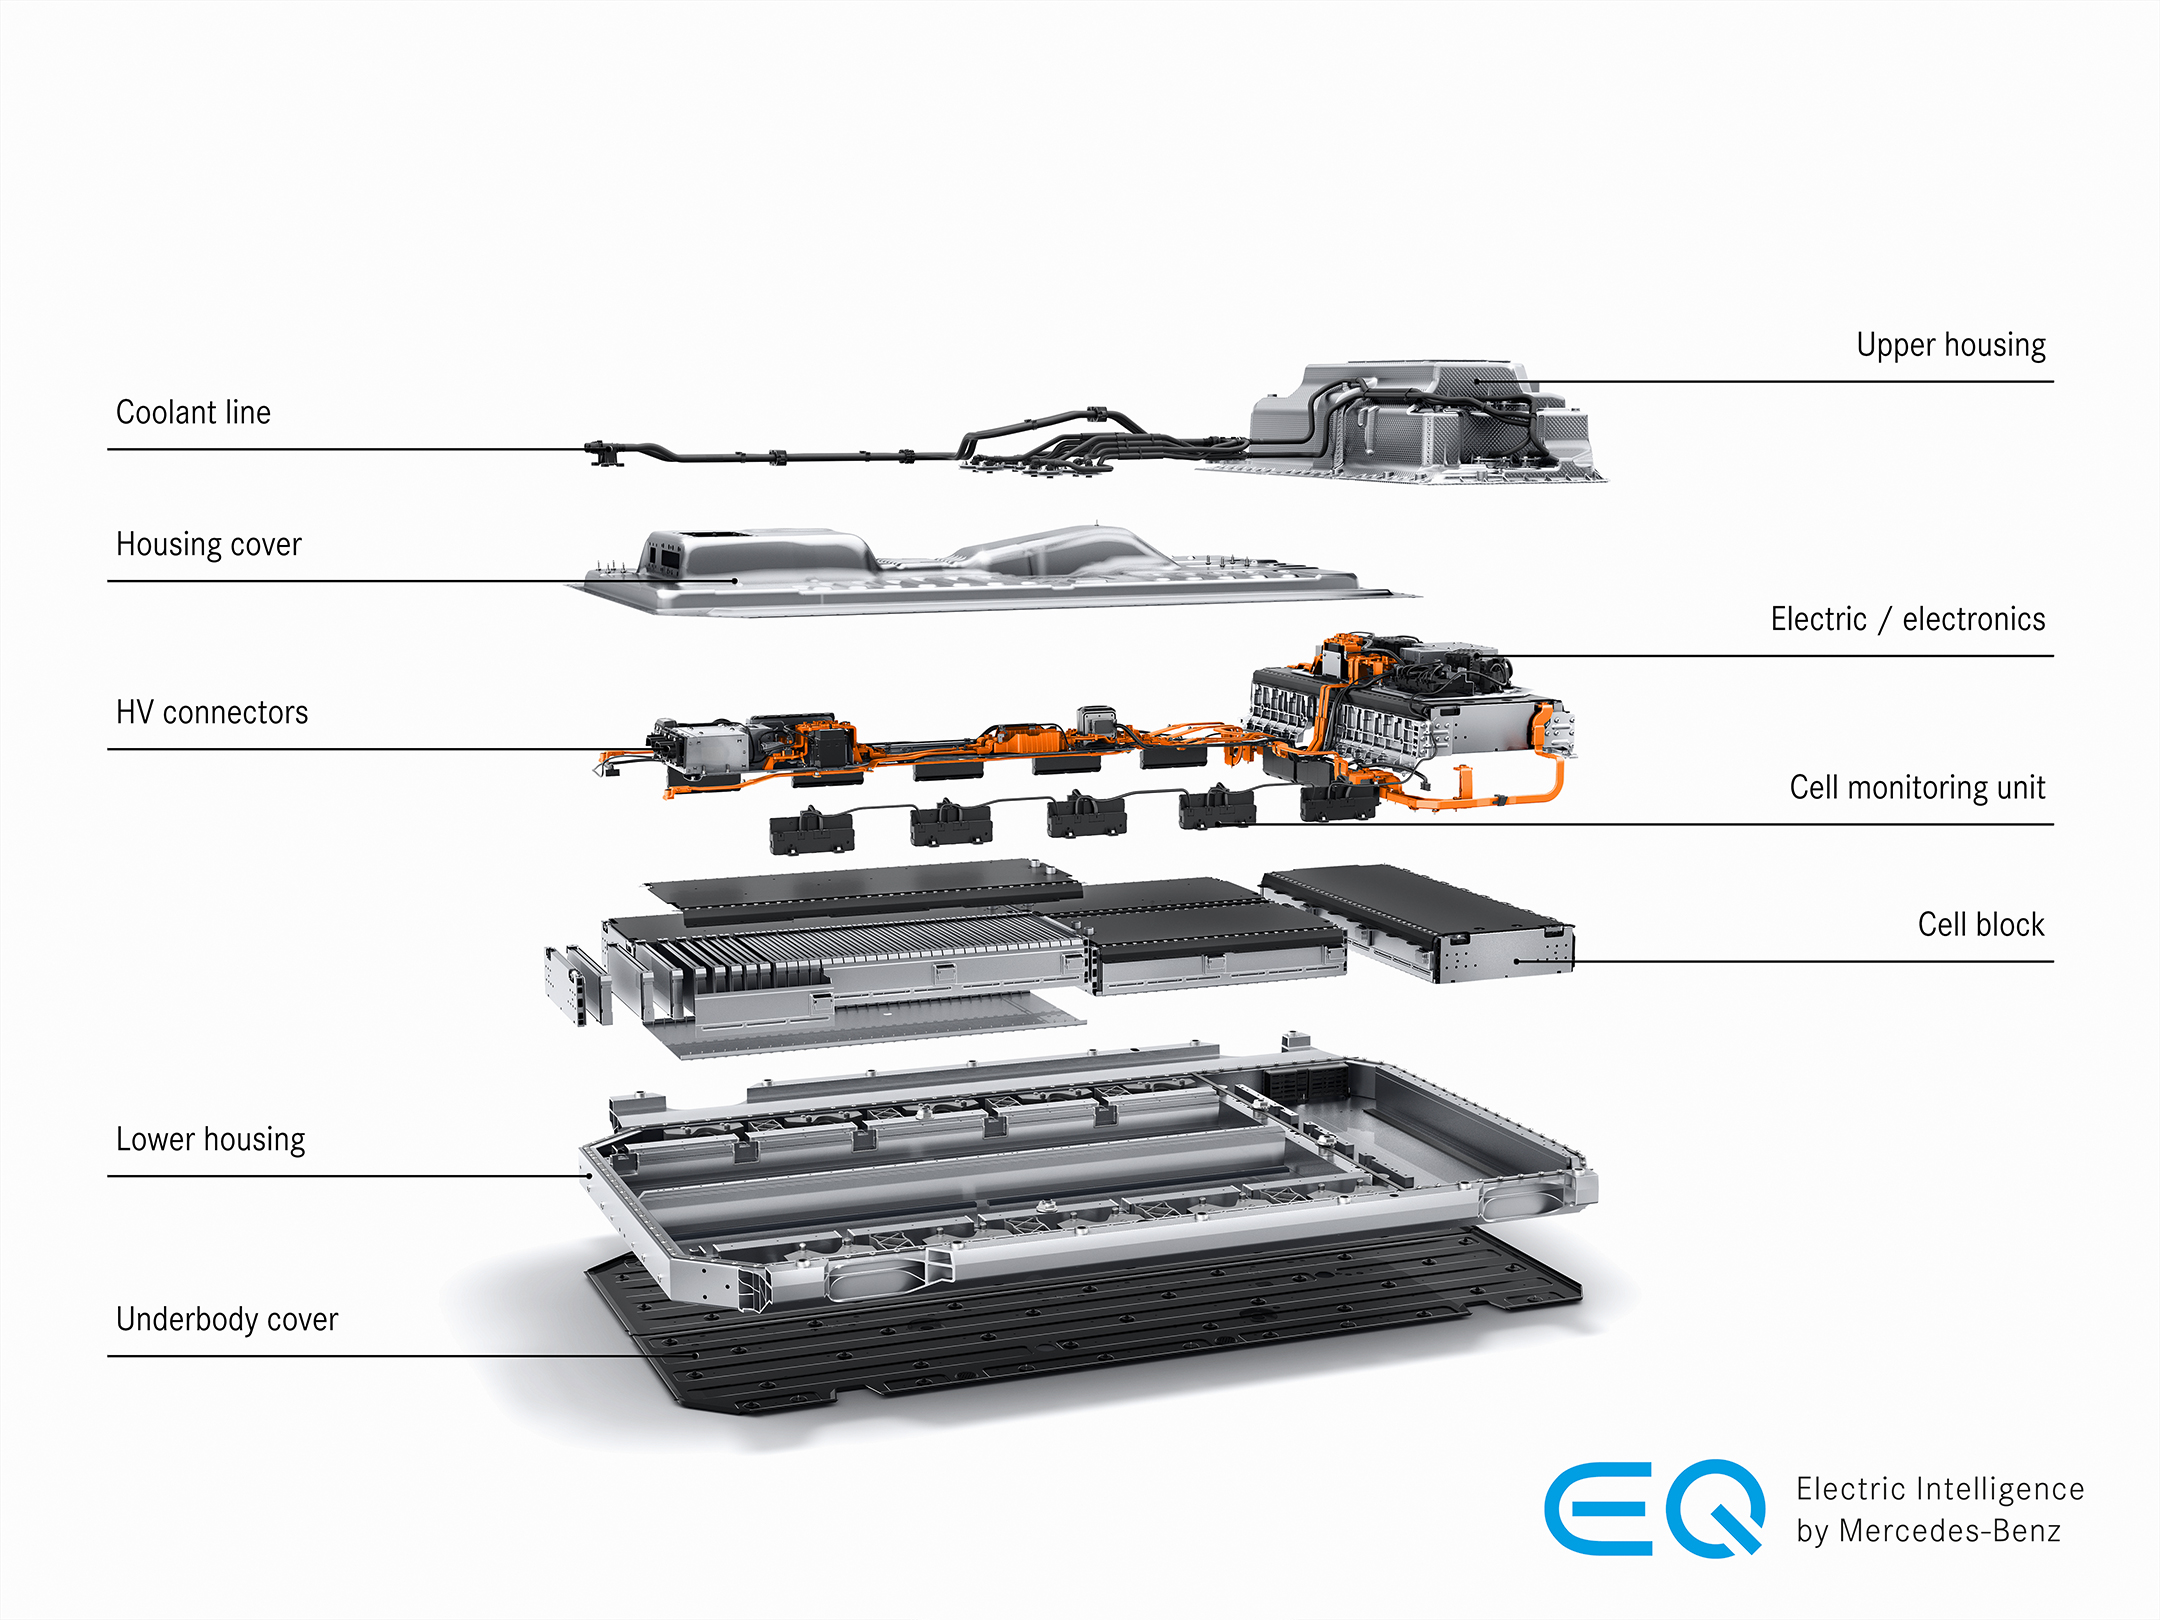 Mercedes-Benz EQC - 2019 - lithium-ion (Li-Ion) battery - modular design - 2 modules 48 cells + 4 modules 72 cells